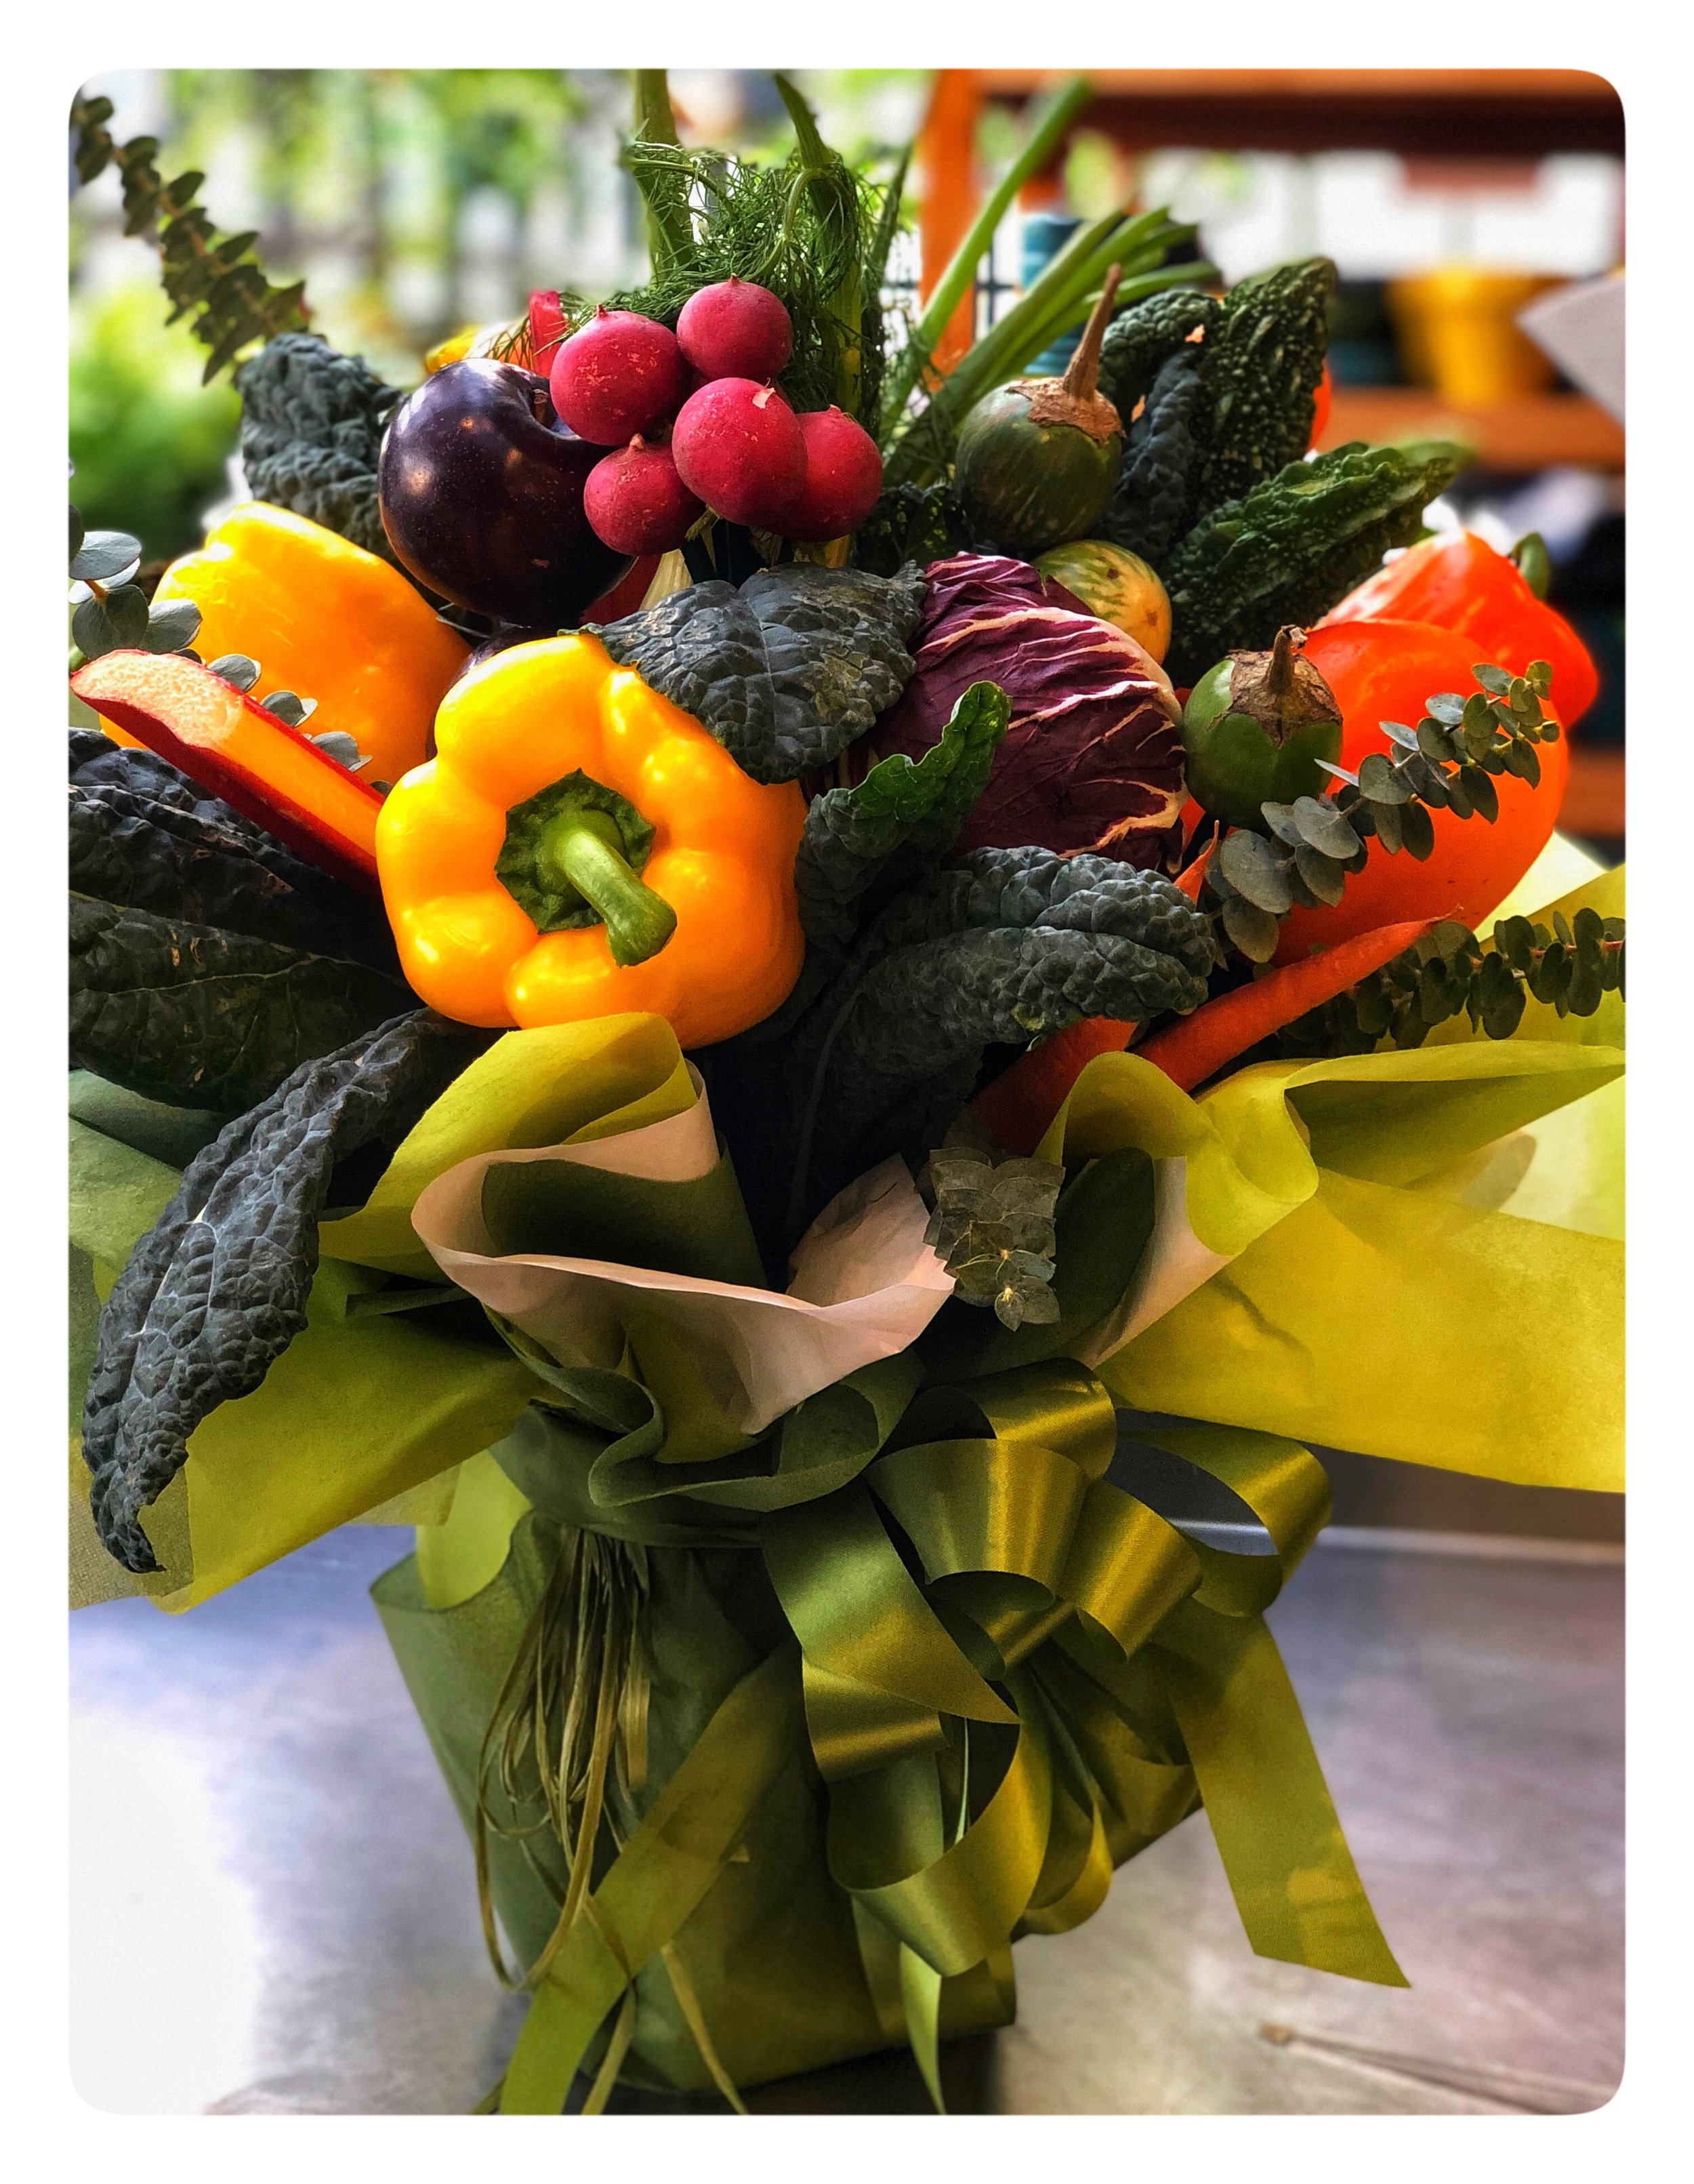 A Vase of Vegetables - the perfect gift for the foodie in your life!